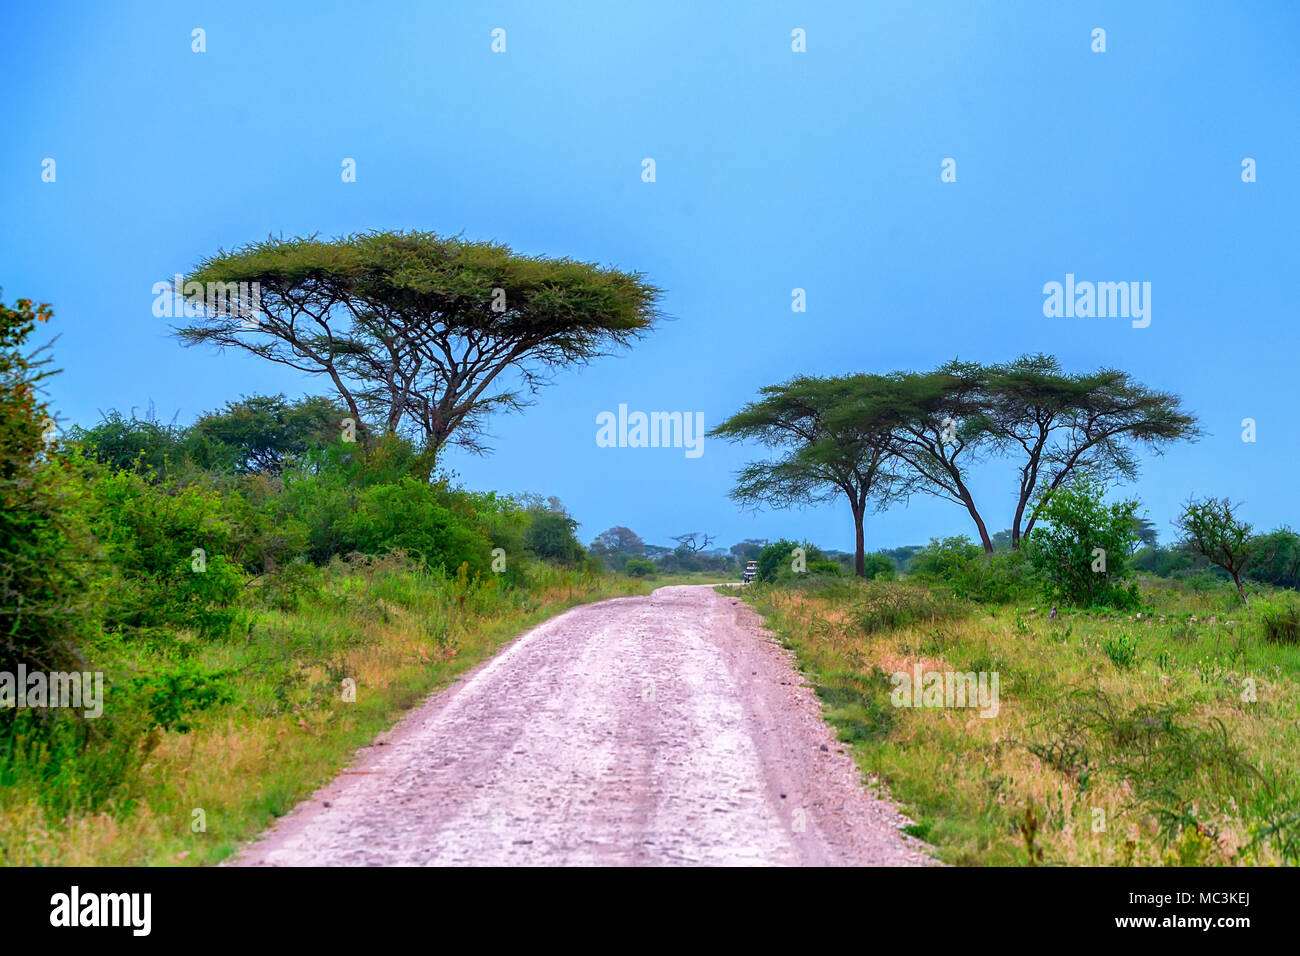 Road in African scenic forest Stock Photo